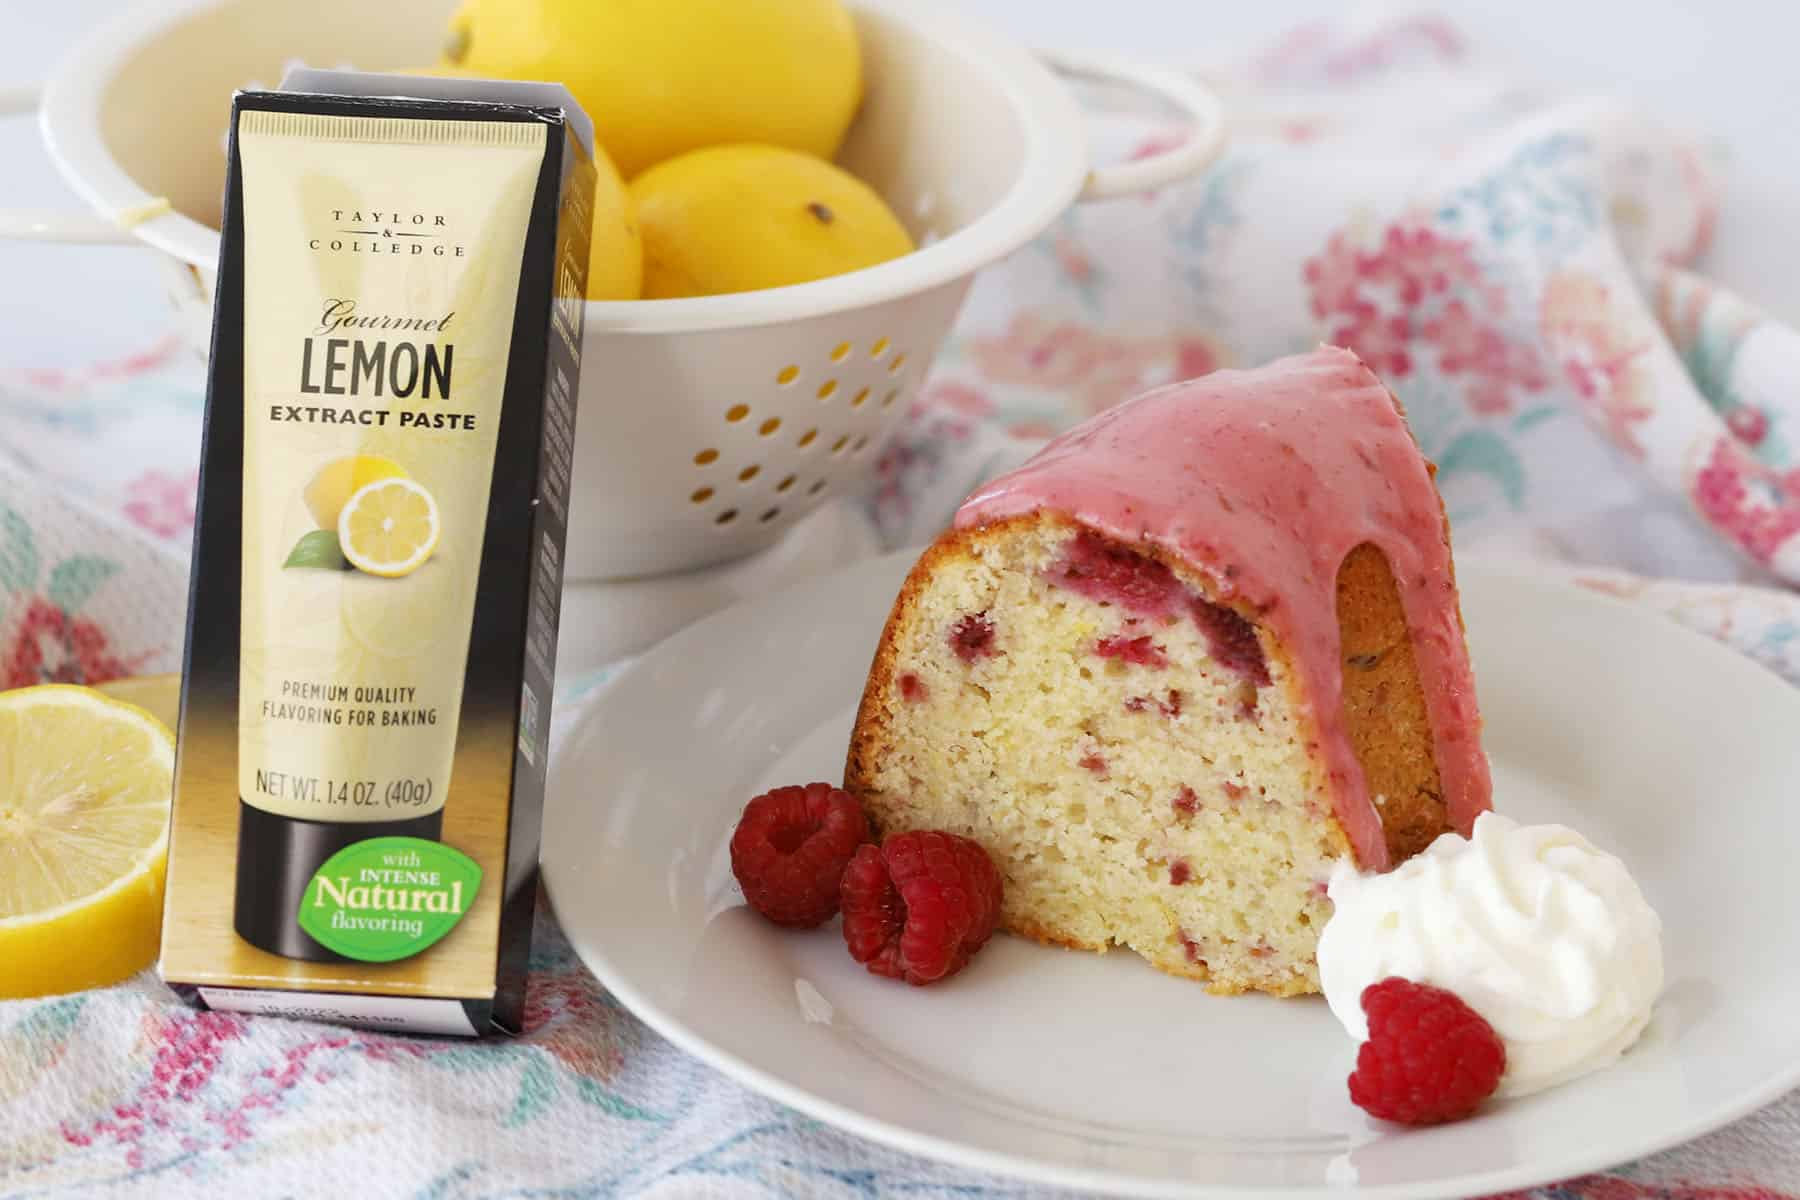 A slice of glazed bundt cake on a plate with whipped cream and raspberries, with a tube of lemon paste next to it.